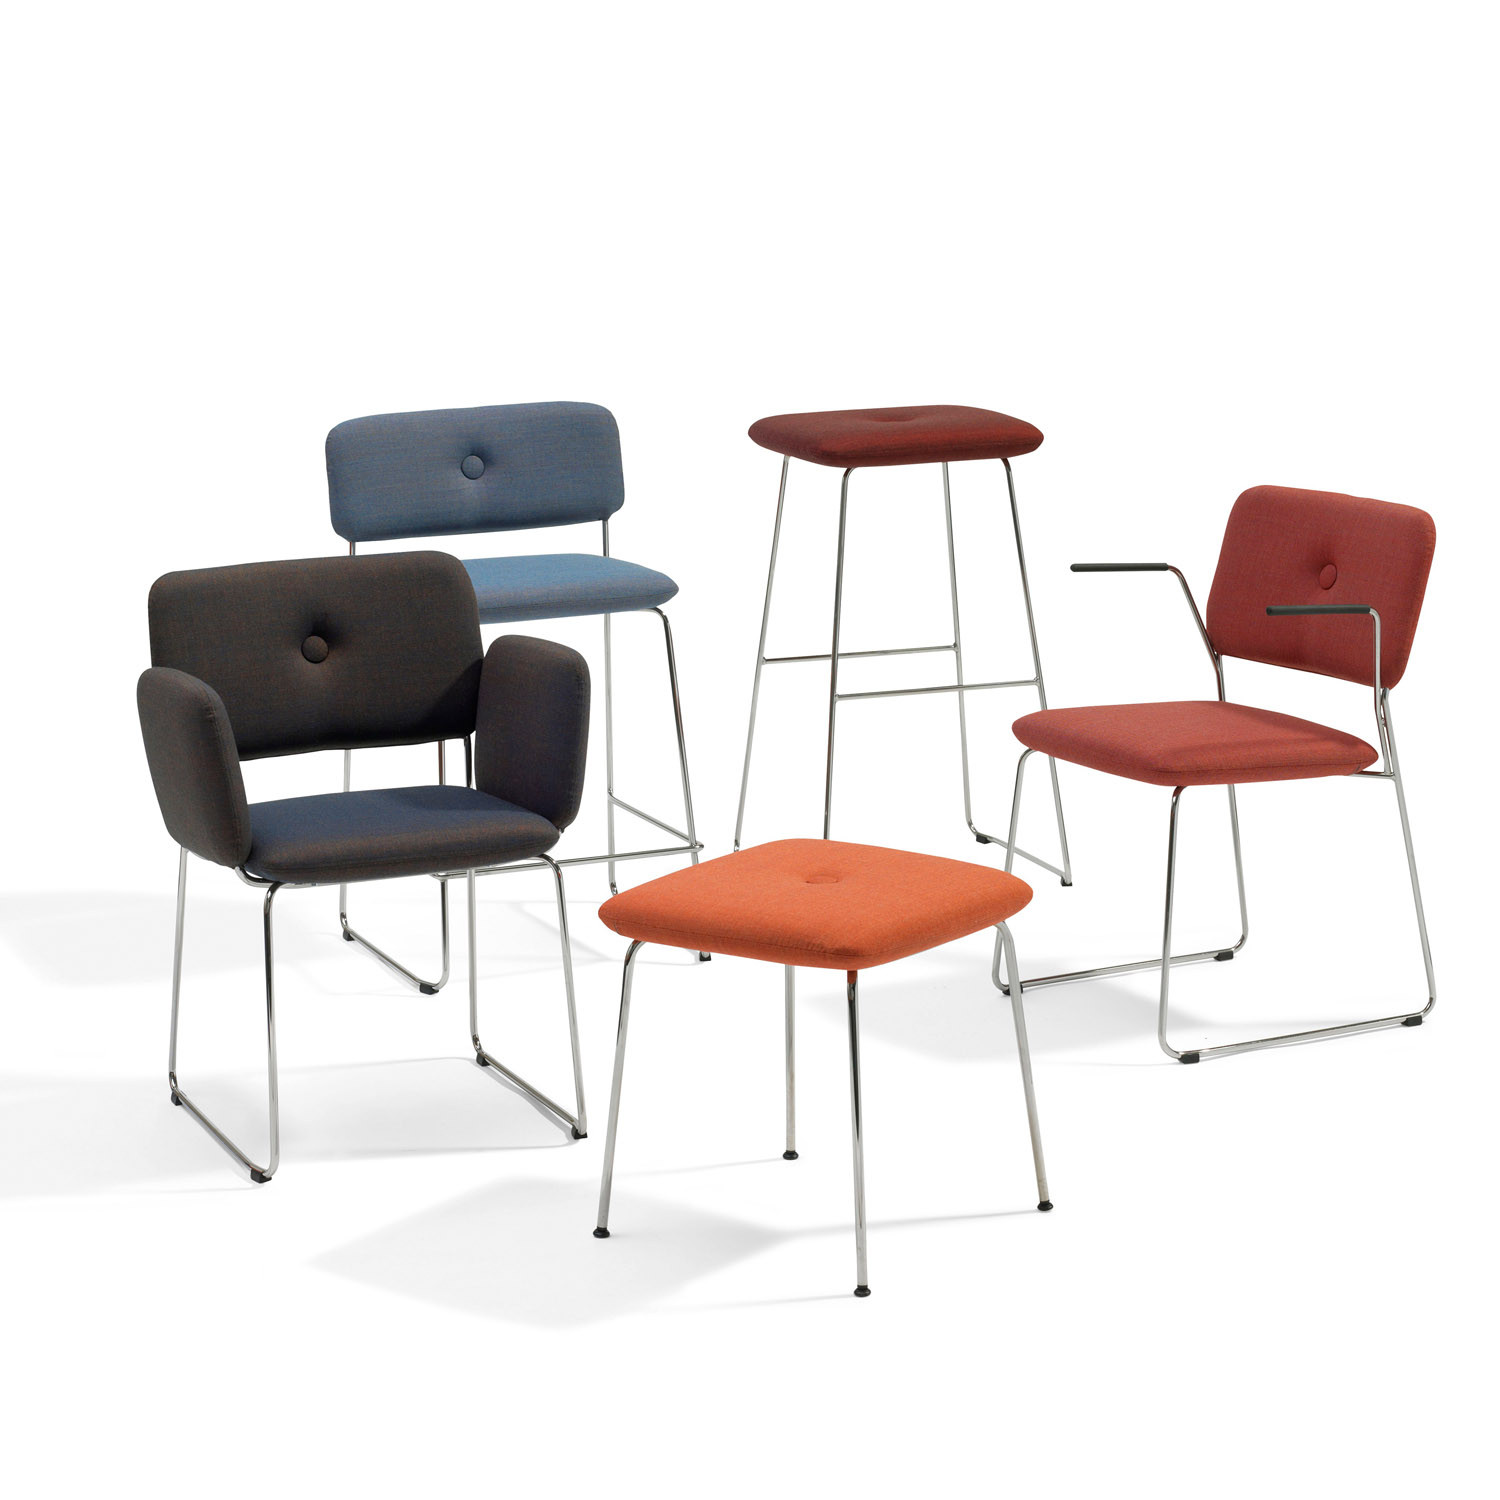 Dundra Seating Range